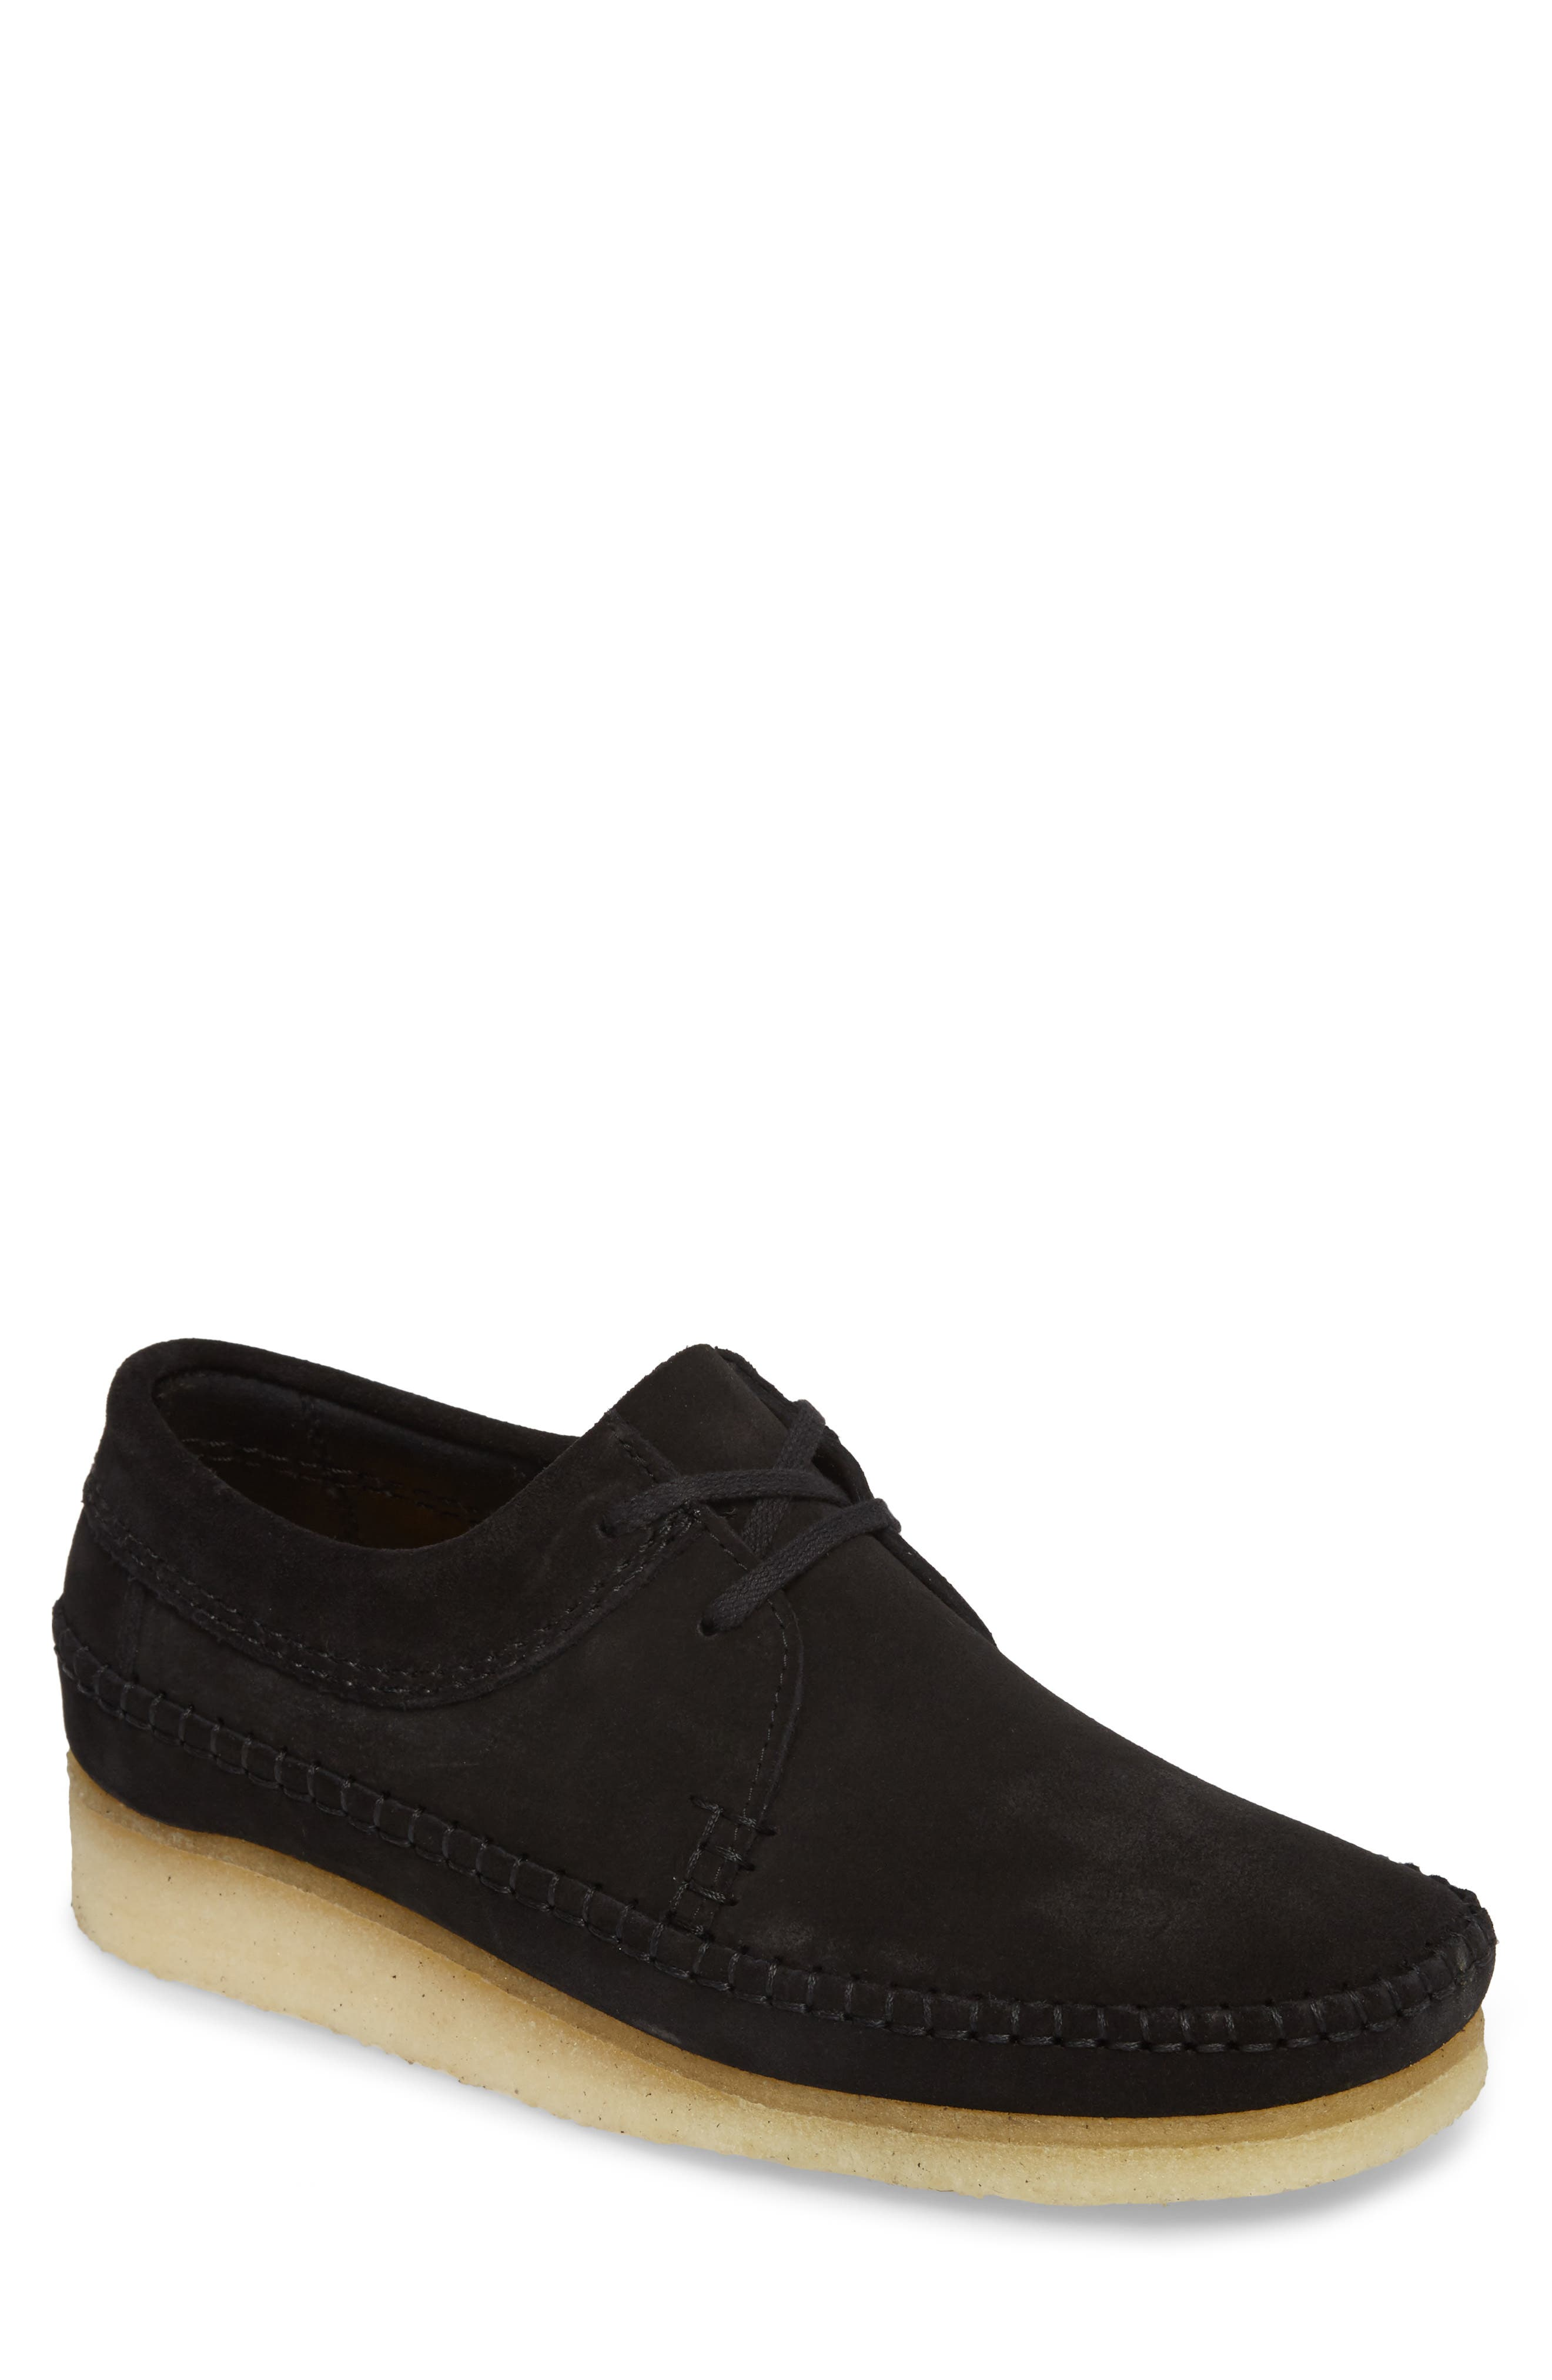 Weaver Moc Toe Derby,                             Main thumbnail 1, color,                             Black Suede